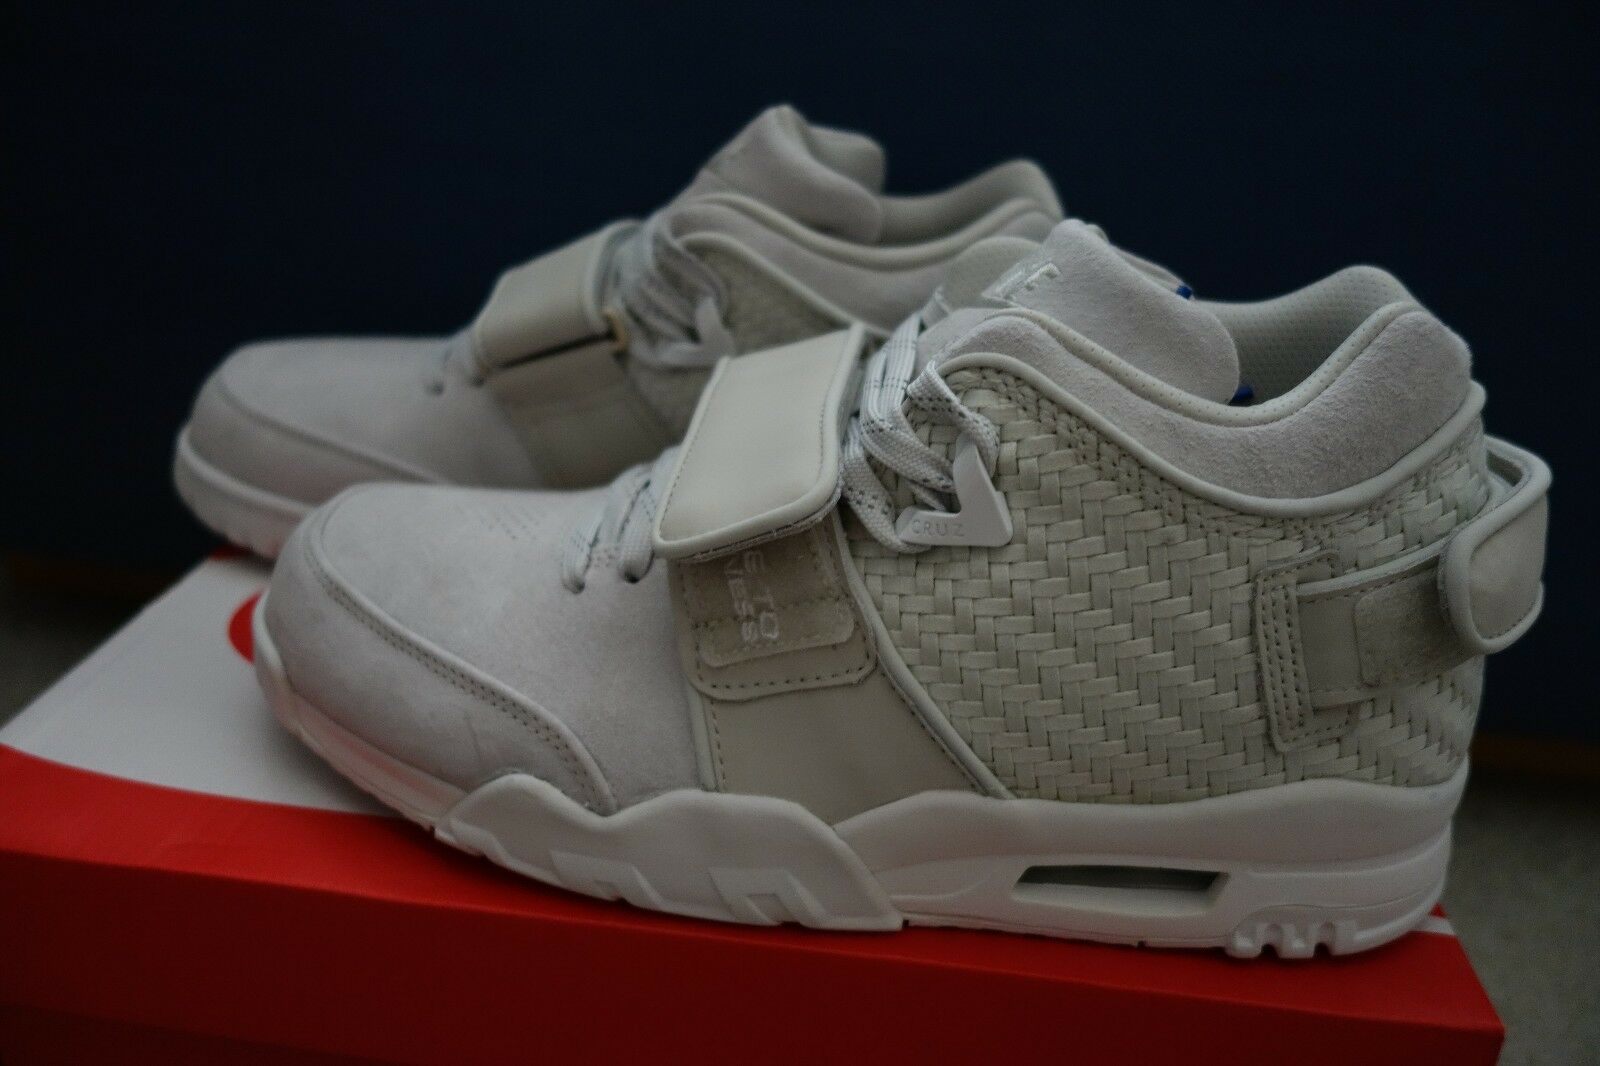 Nike Air Trainer Victor Cruz Light Bone size 9.5 777535-003